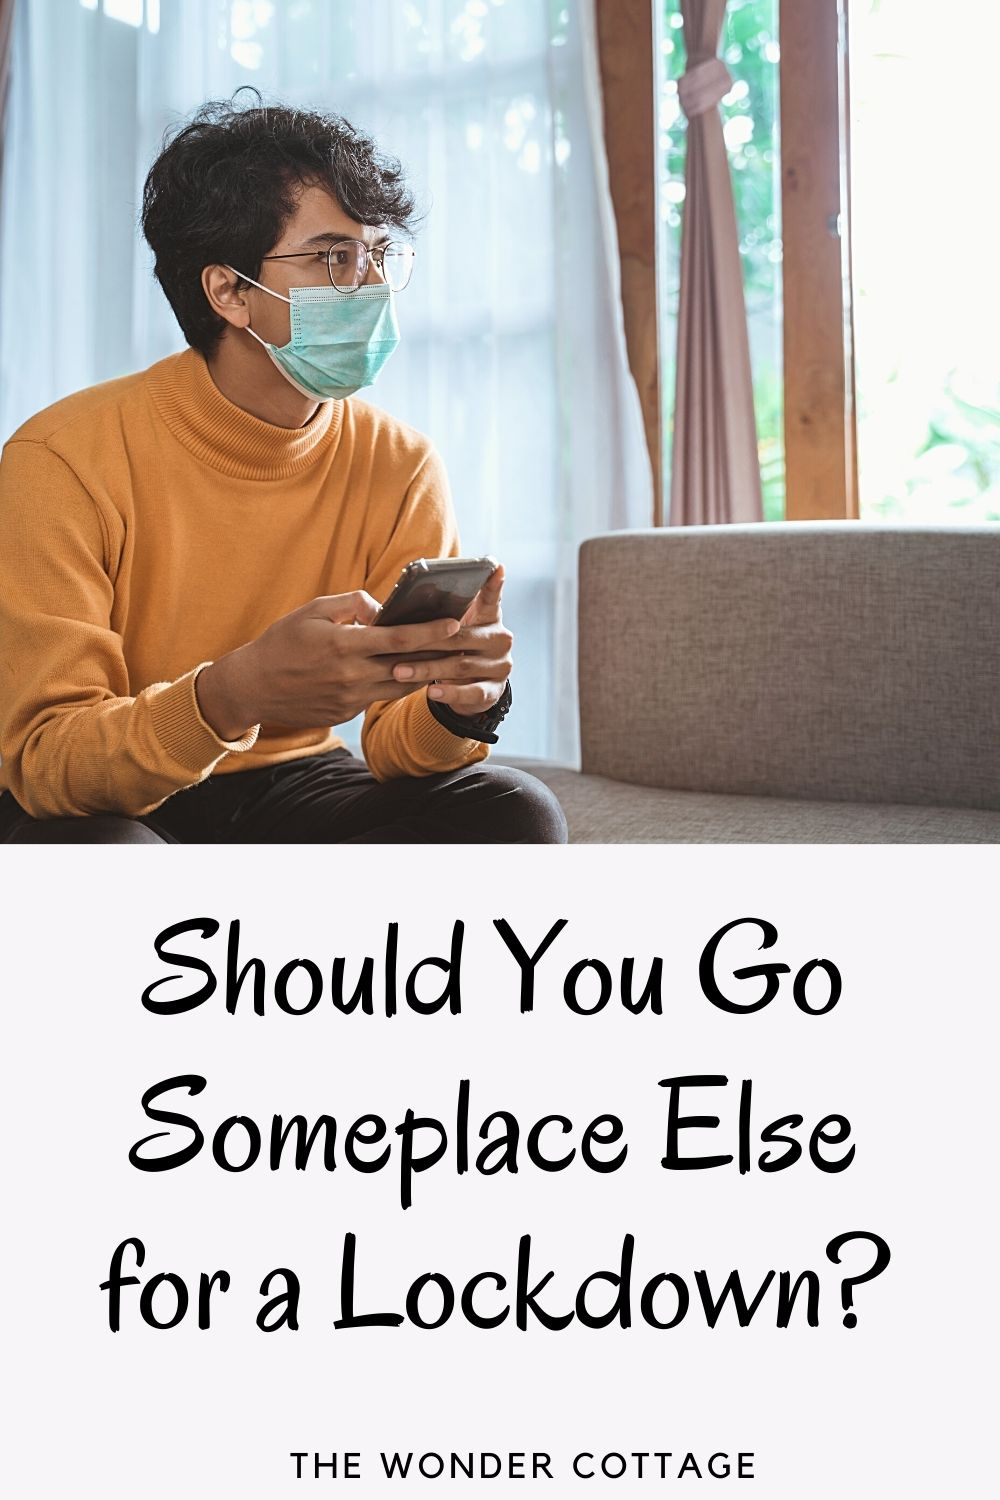 Should You Go Someplace Else for a Lockdown?